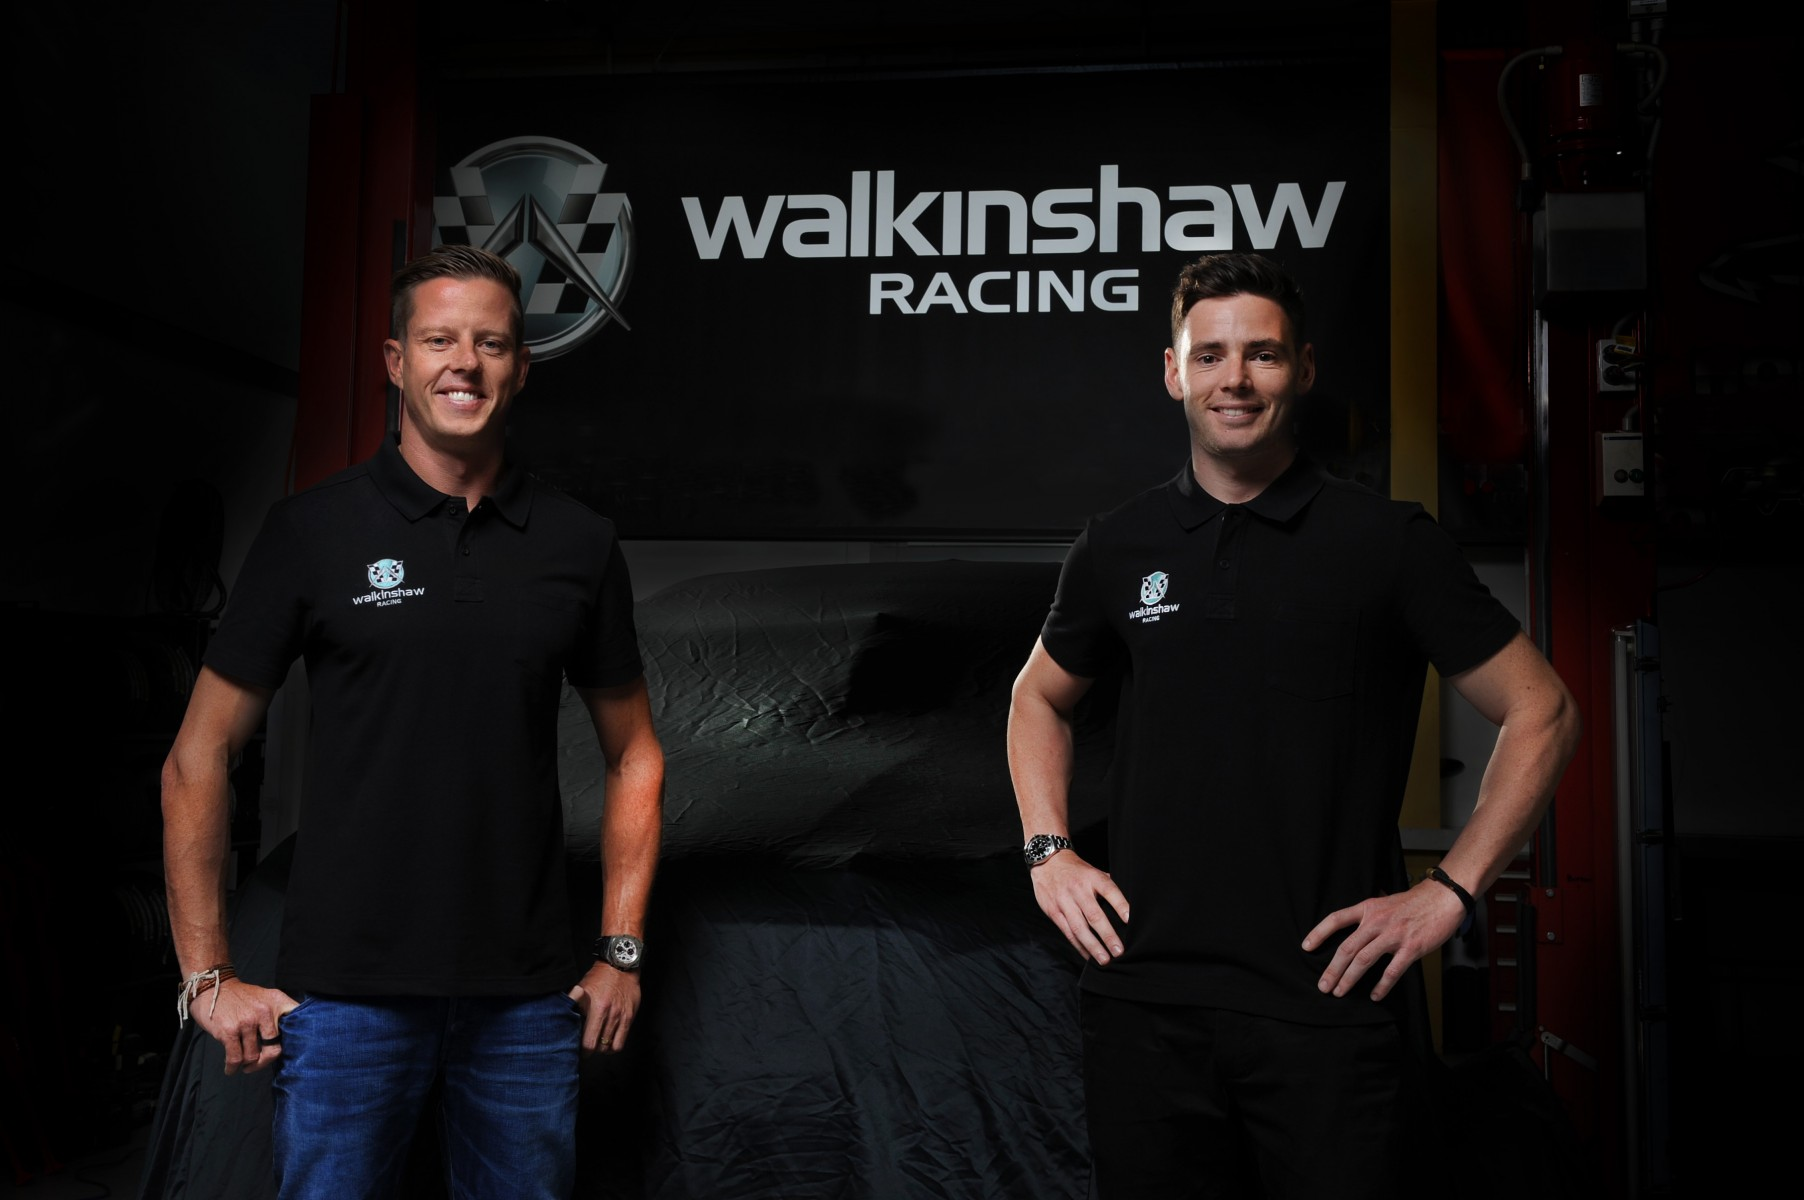 James Courtney and Scott Pye will drive for Walkinshaw in 2017